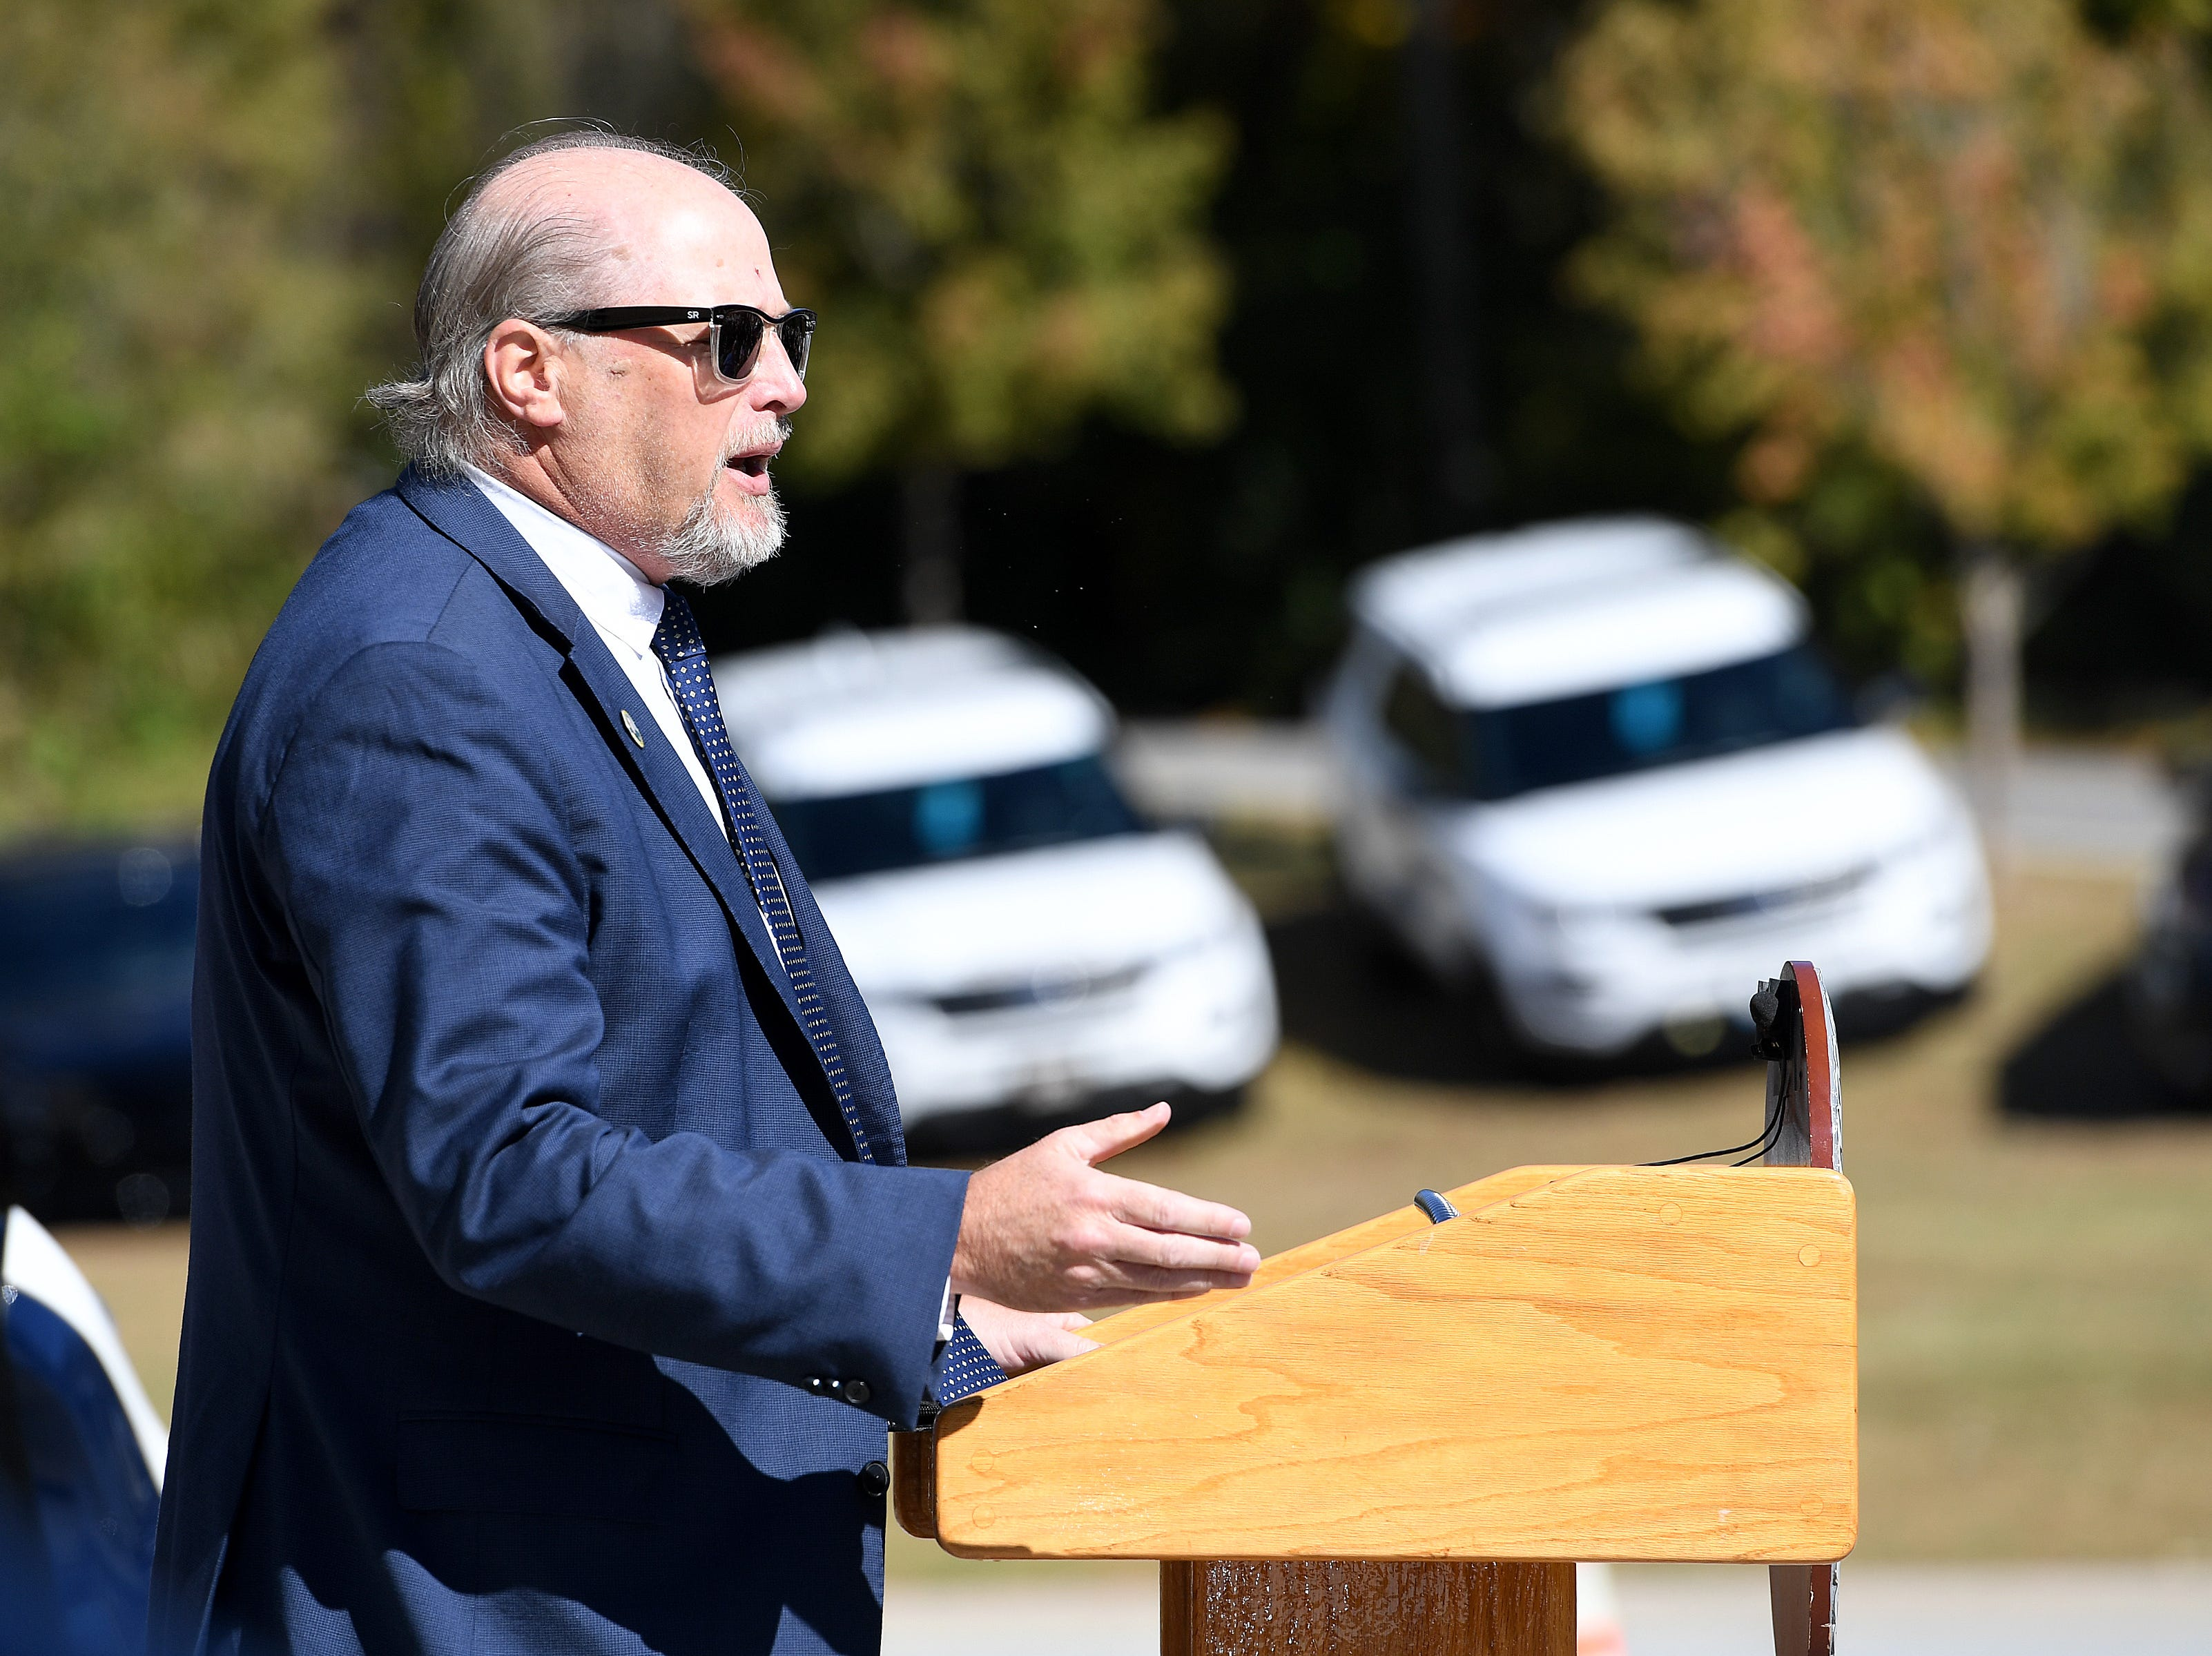 Sgt. retired Rondell Lance, president of the Asheville Fraternal Order of Police, speaks about Robert Bingaman during a ceremony to dedicate a portion of Old Haywood Road to the Asheville police officer at the Traffic Safety Office on the five-year-anniversary of his death on Oct. 29, 2018.